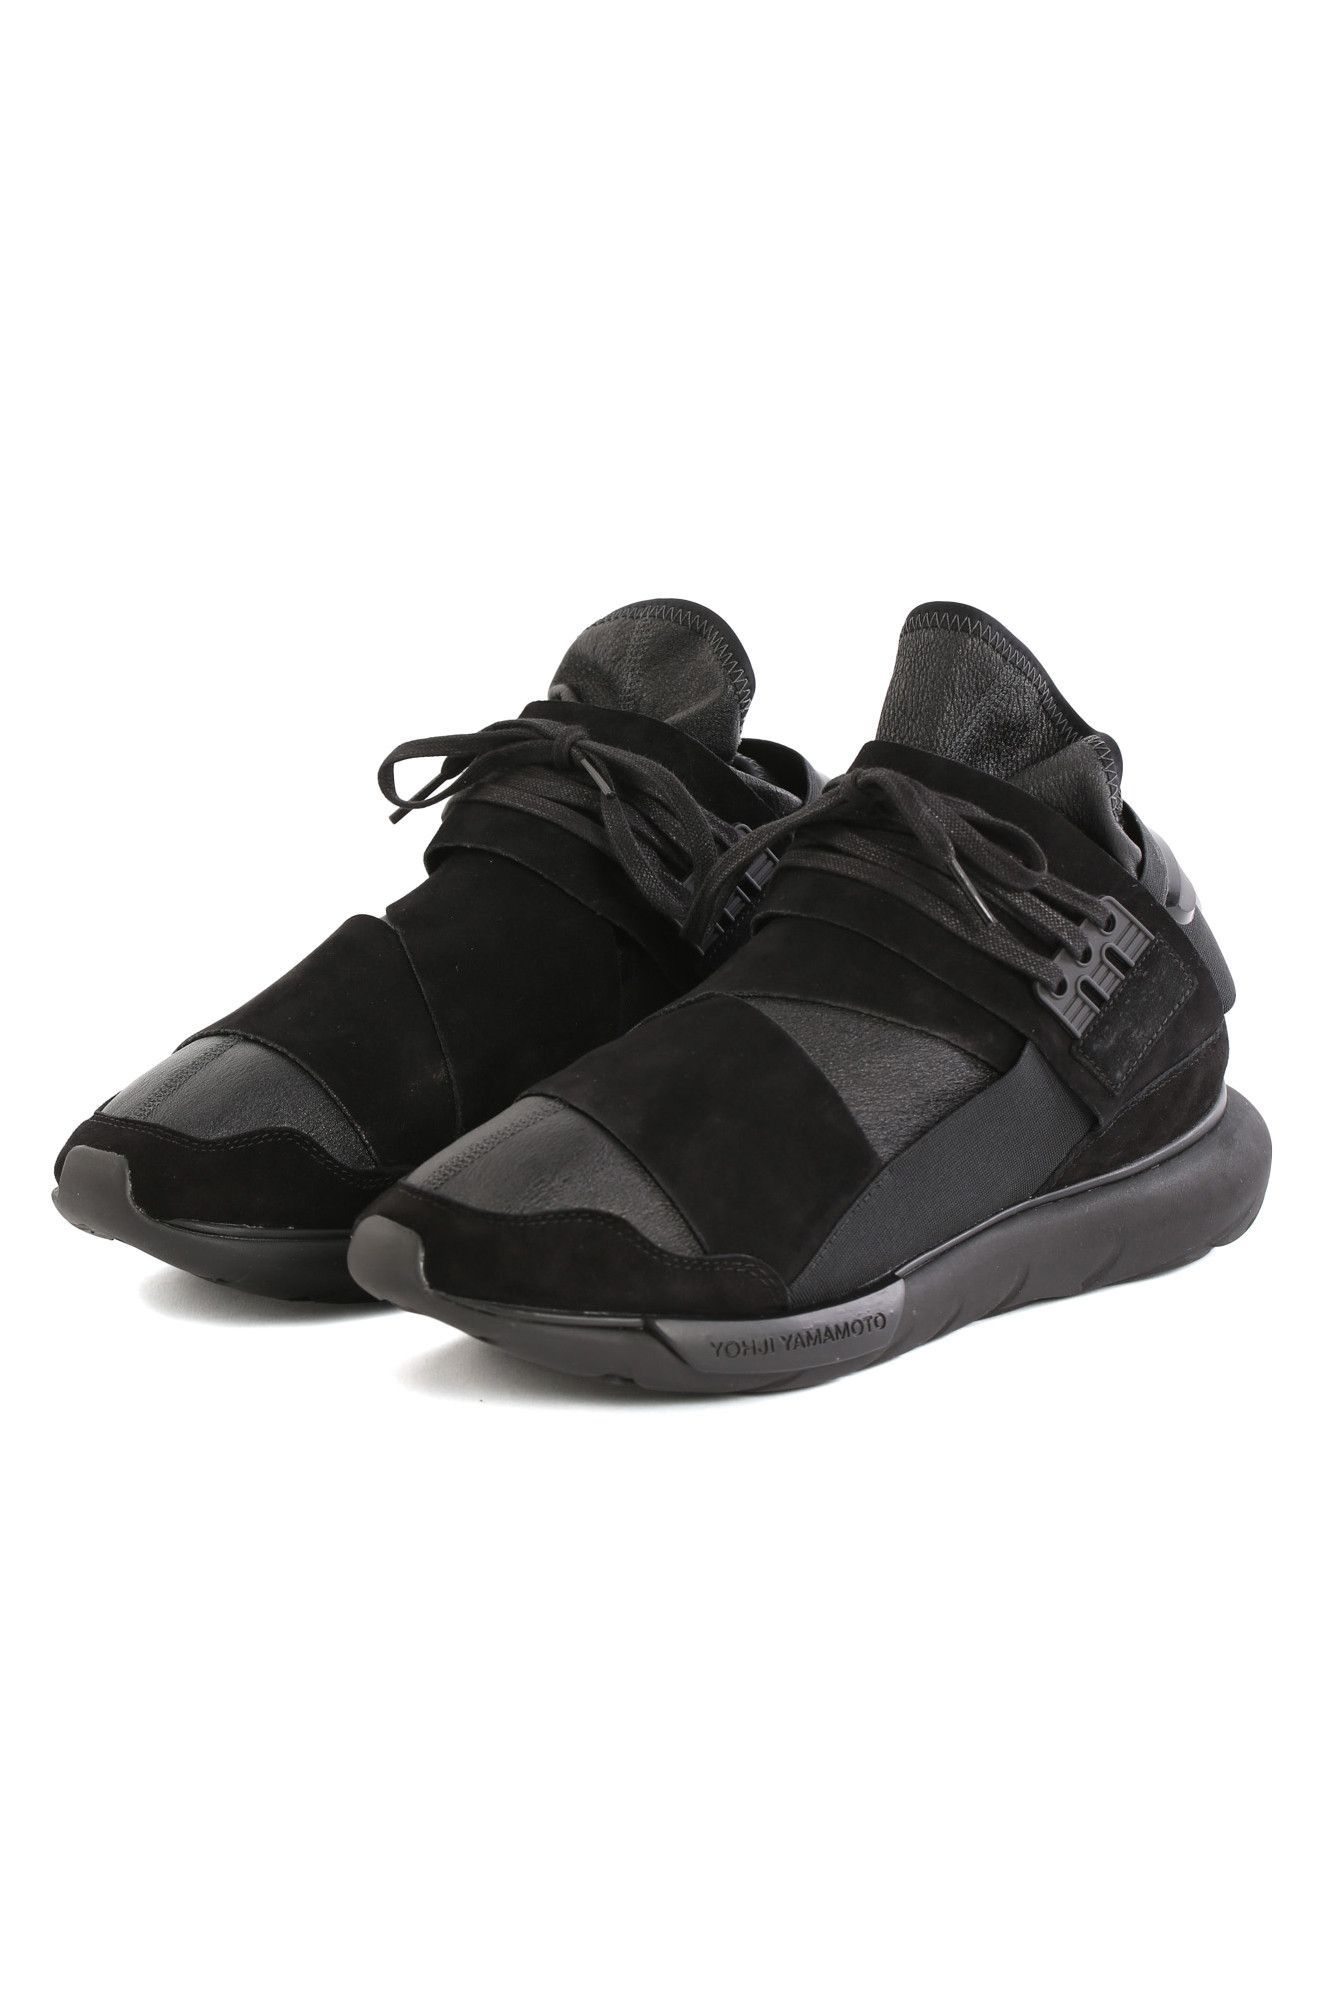 6ba958e3d2e904 The Qasa High Leather from Y-3, a collaboration between Yohji Yamamoto and  adidas